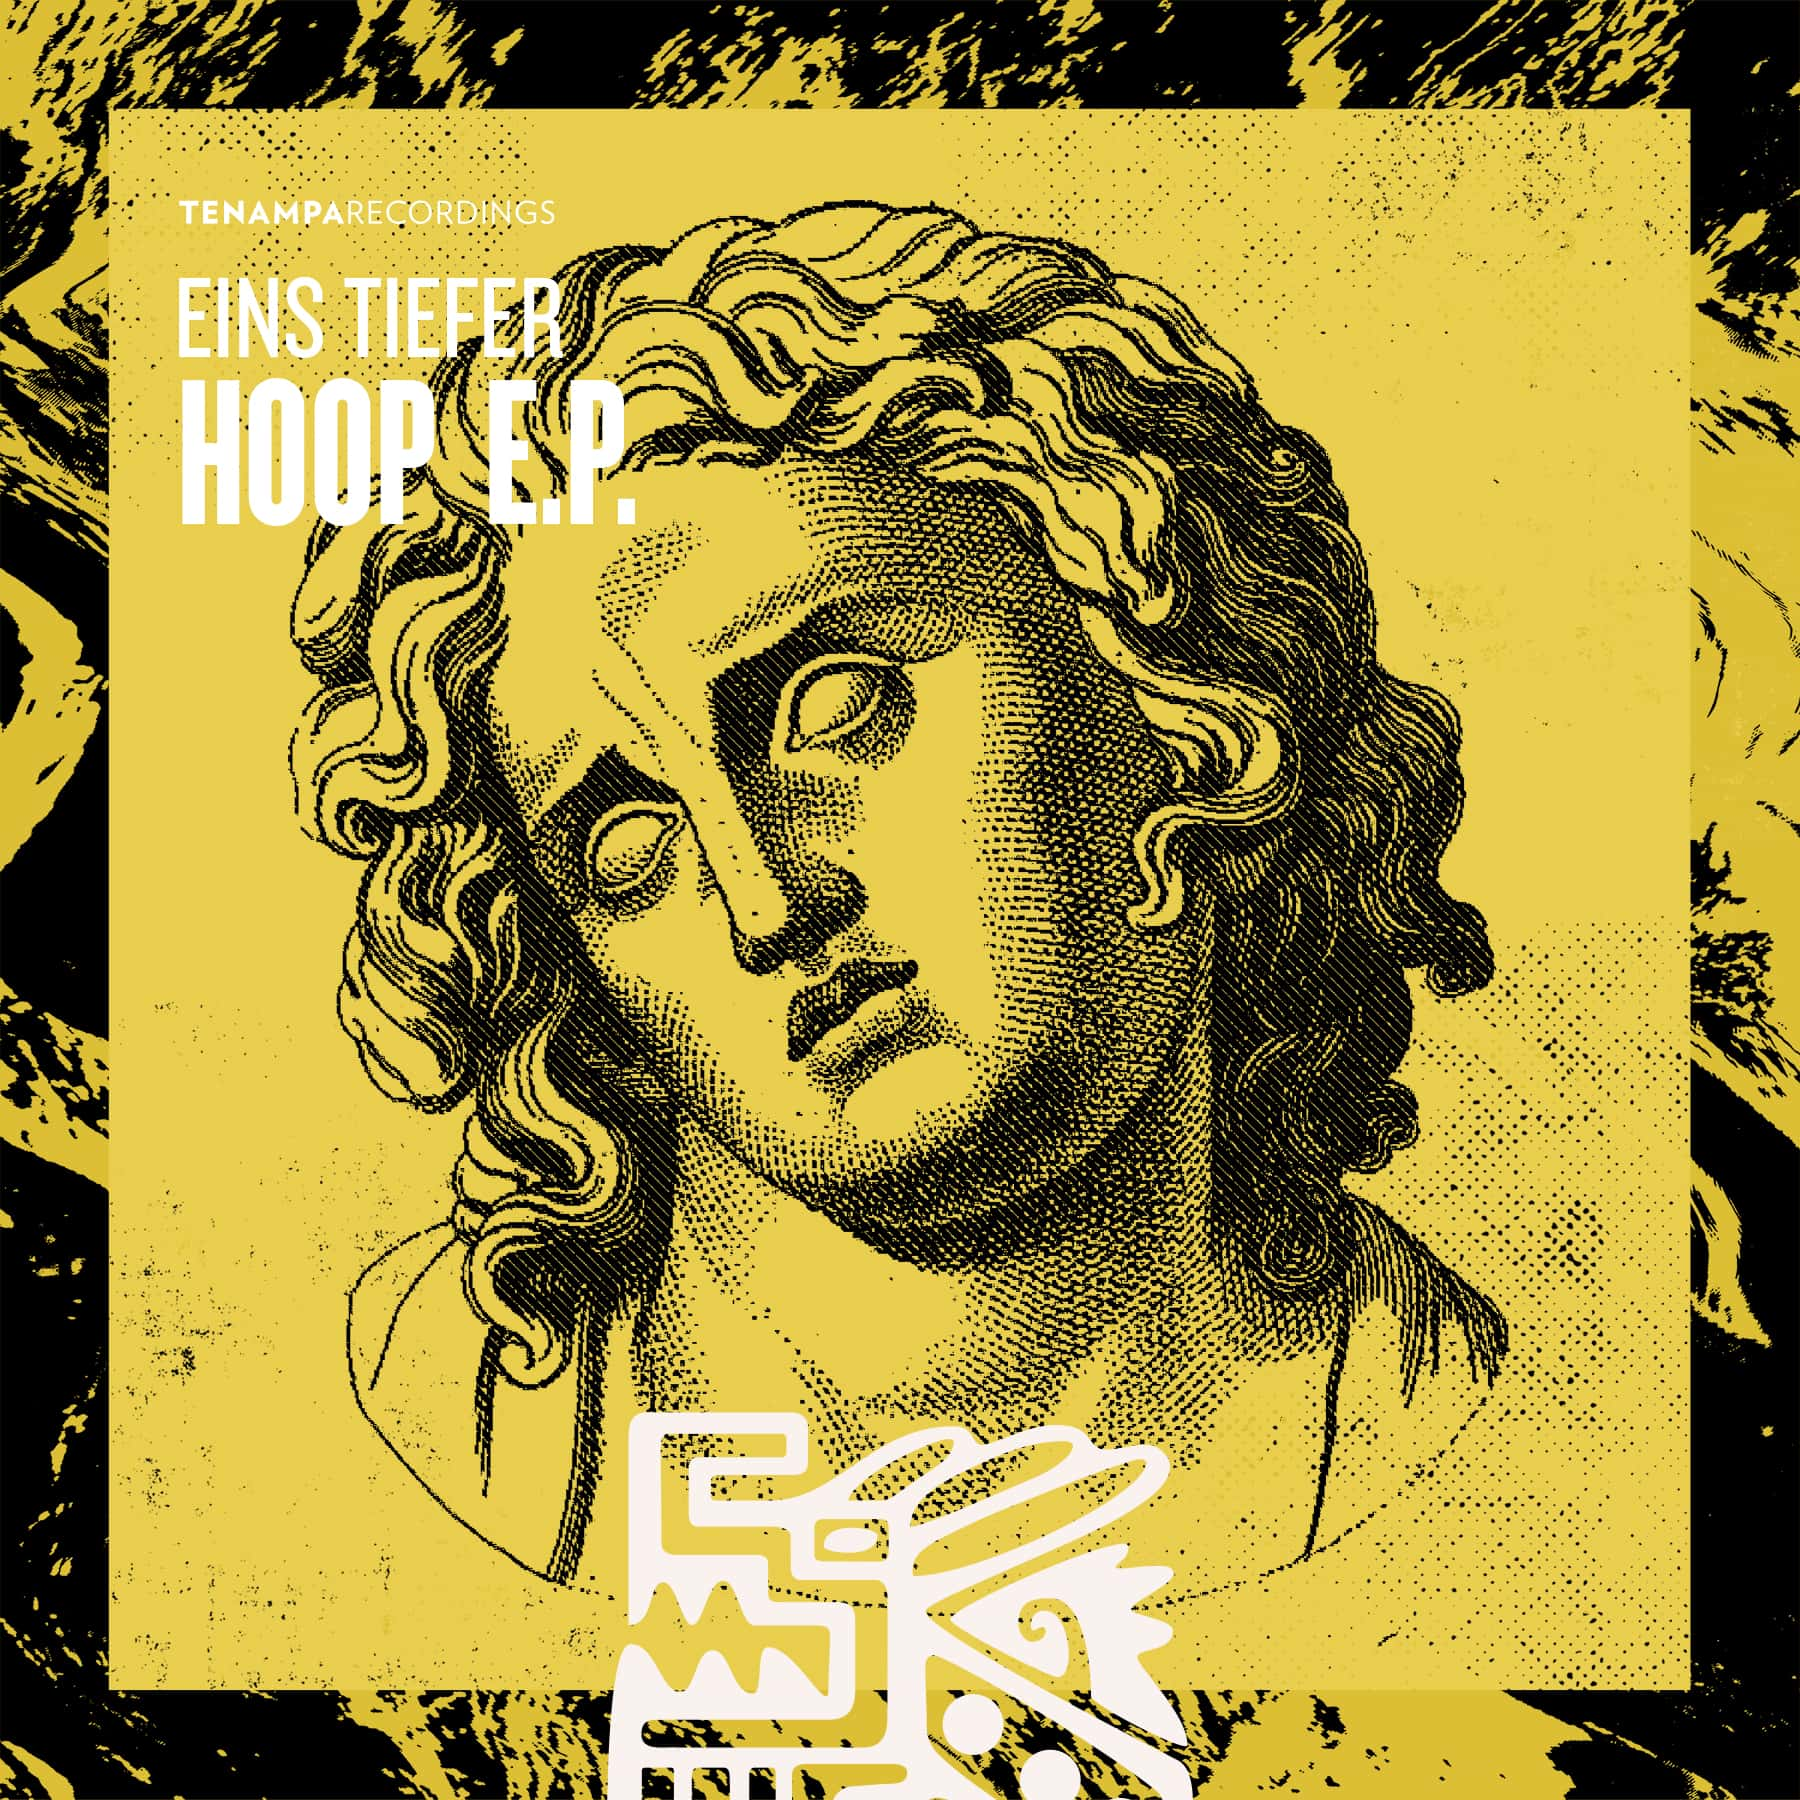 Eins Tiefer's Hoop E.P. Album Cover